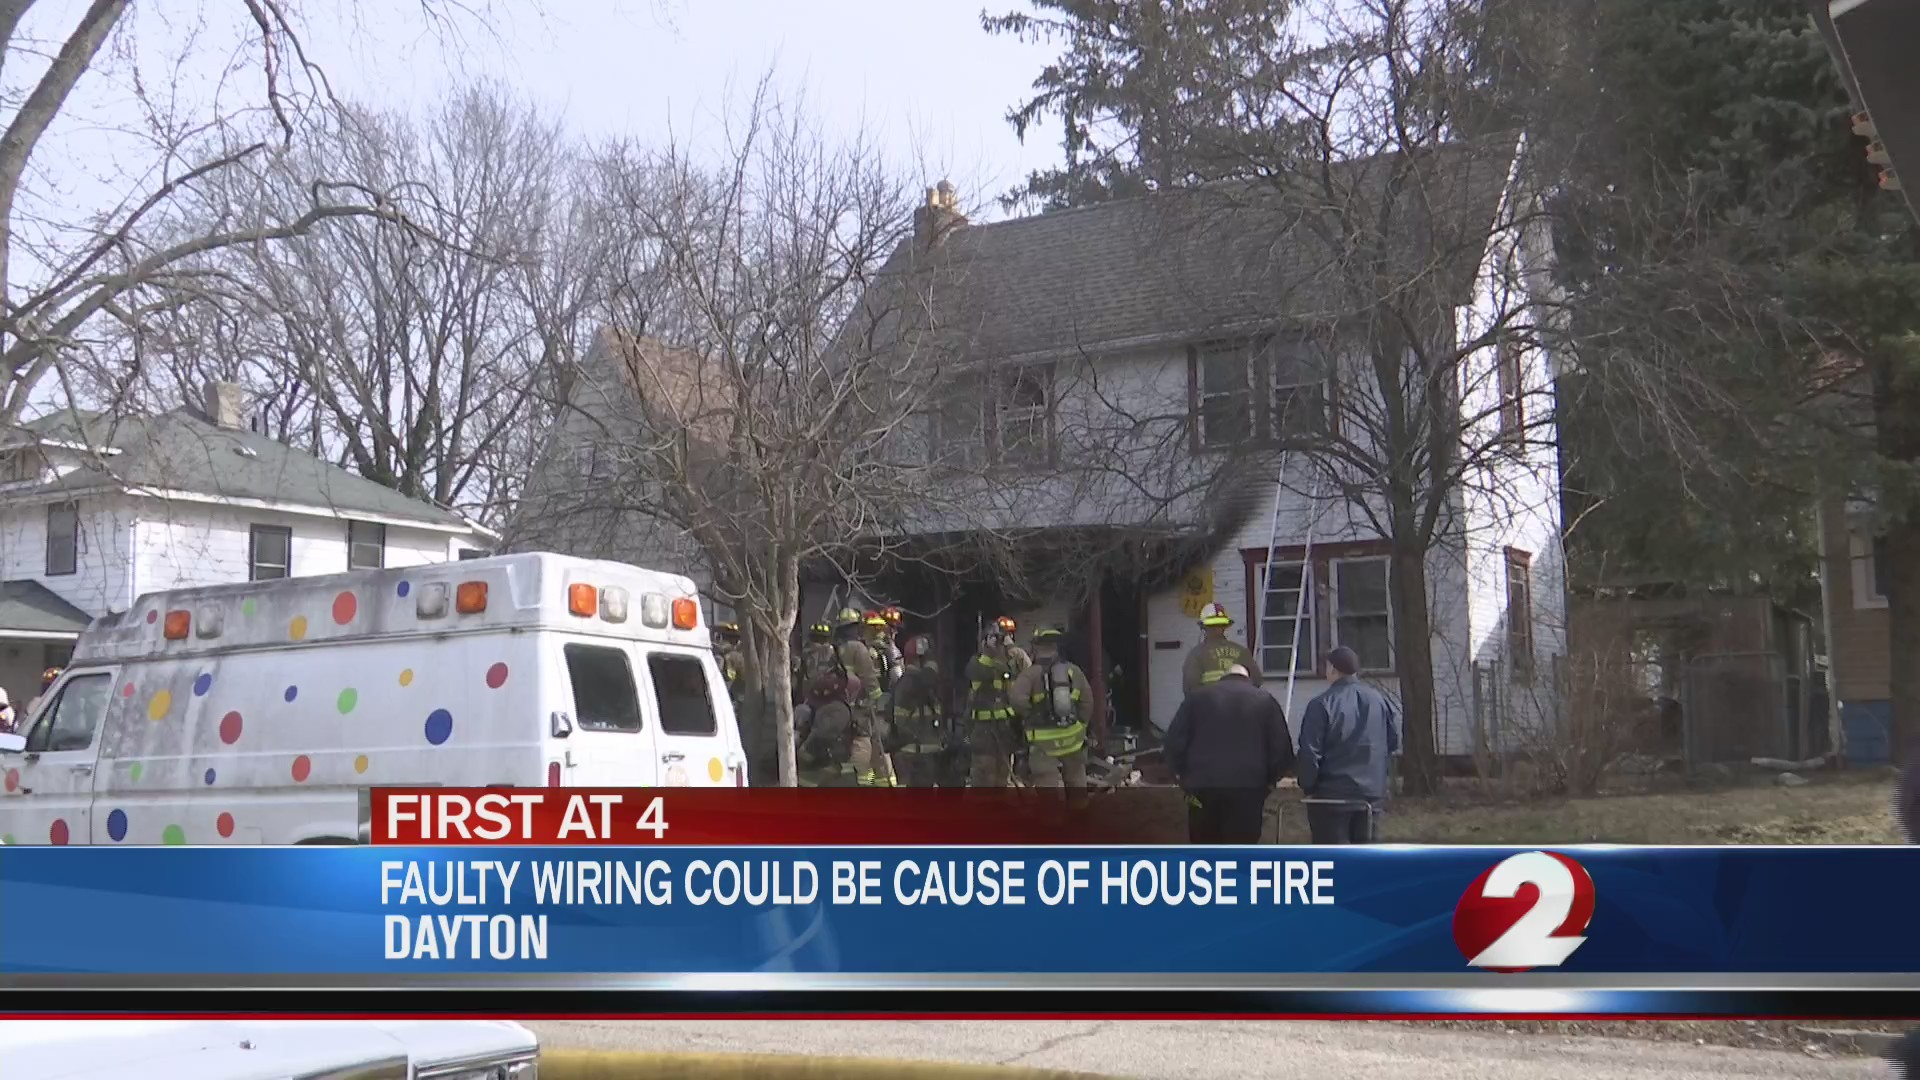 Faulty wiring could be cause of house fire